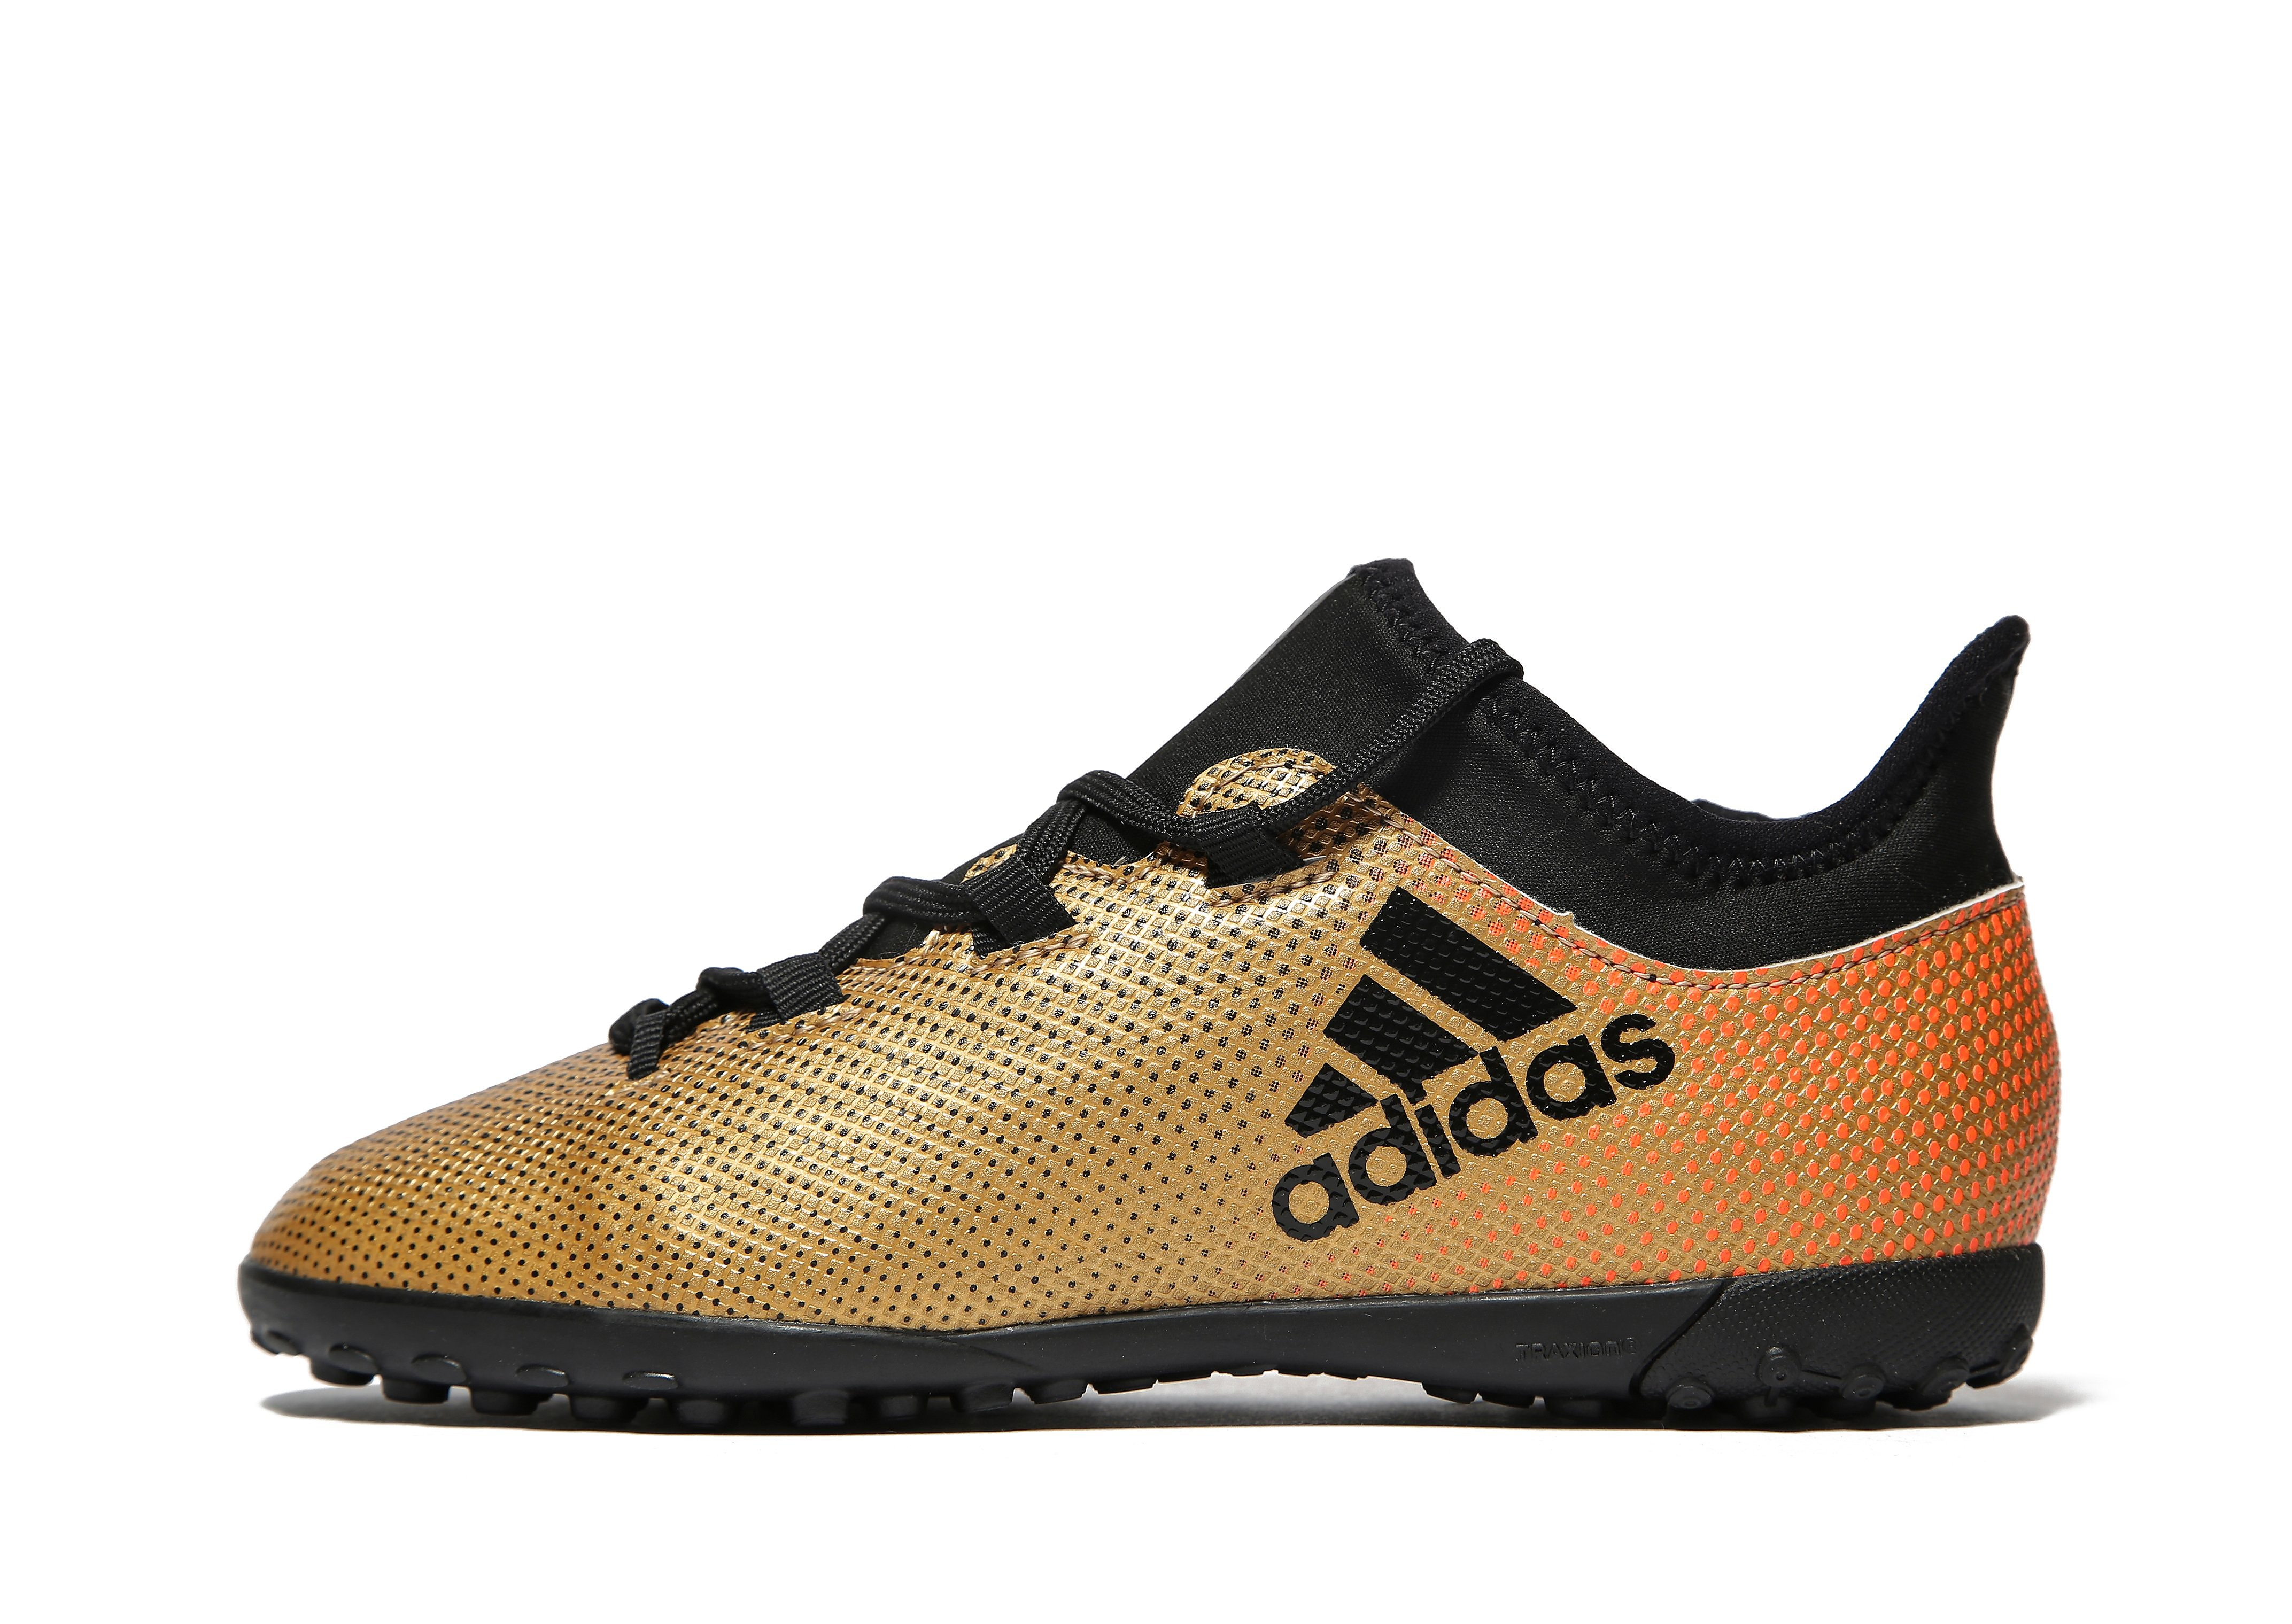 adidas SkyStalker X 17.3 TF Children